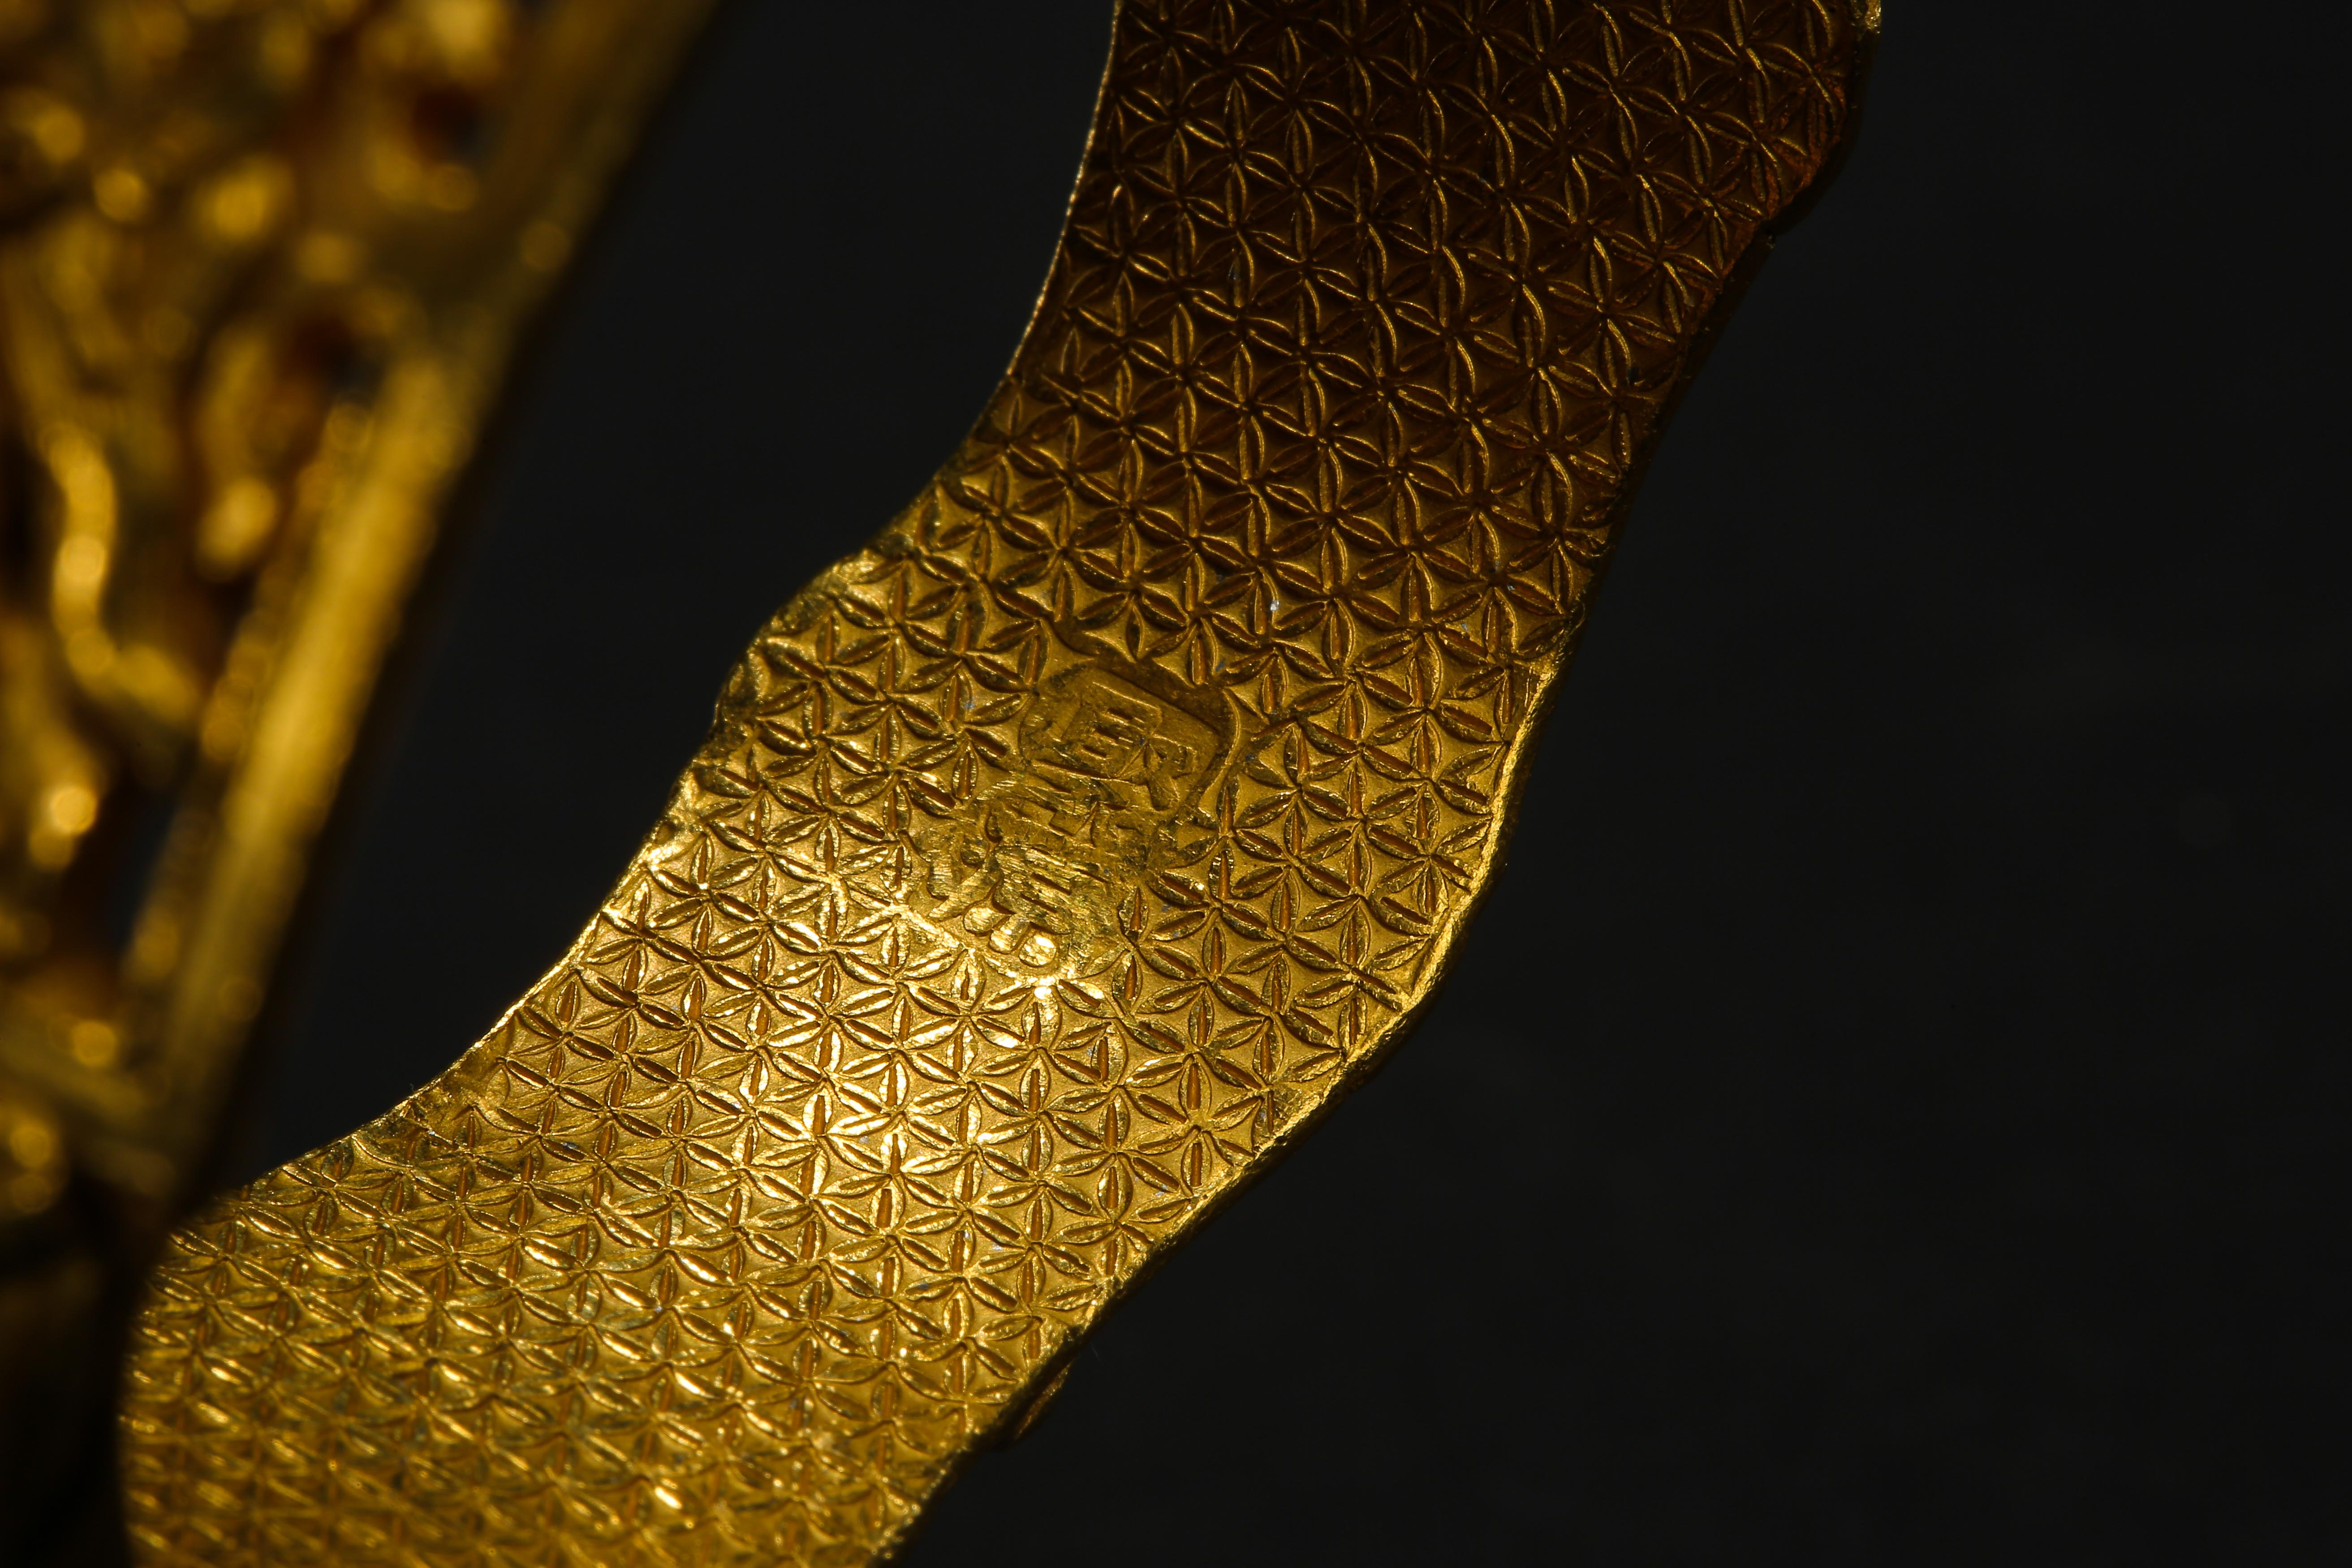 A PAIR OF PURE GOLD BRACELETS, QING DYNASTY, CHINA - Image 6 of 11